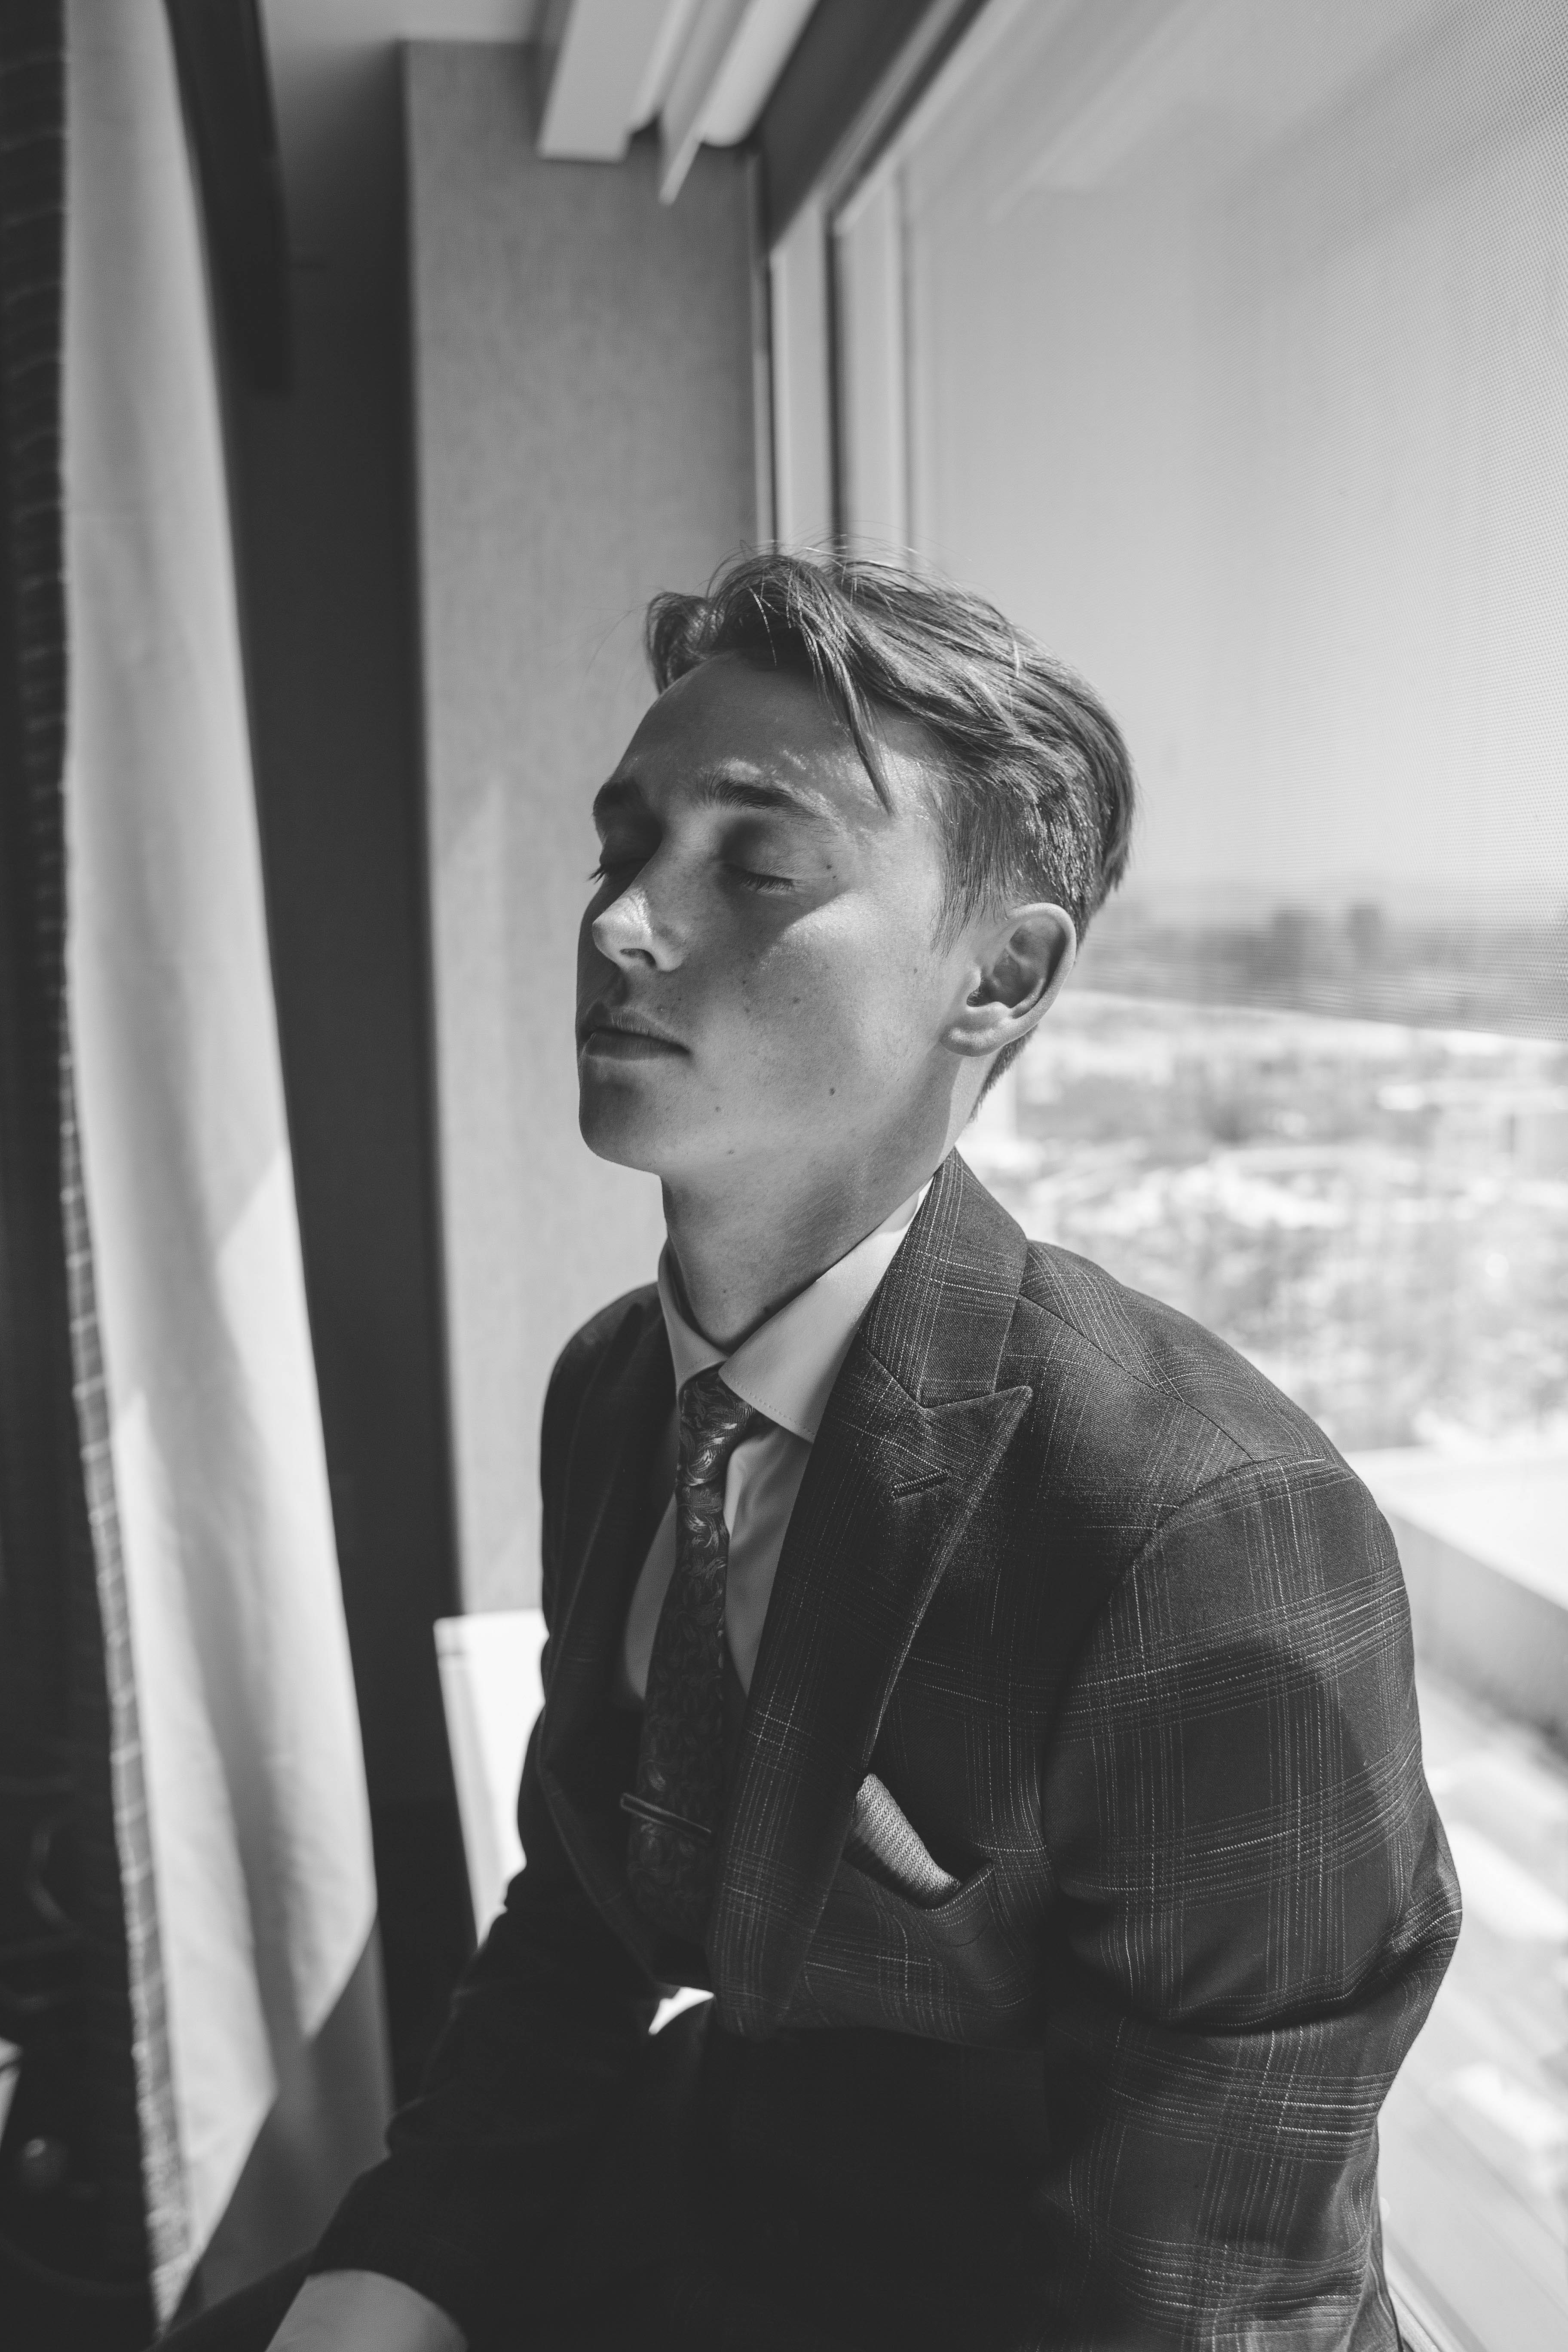 grayscale photo of man in peaked suit jacket sitting beside glass window